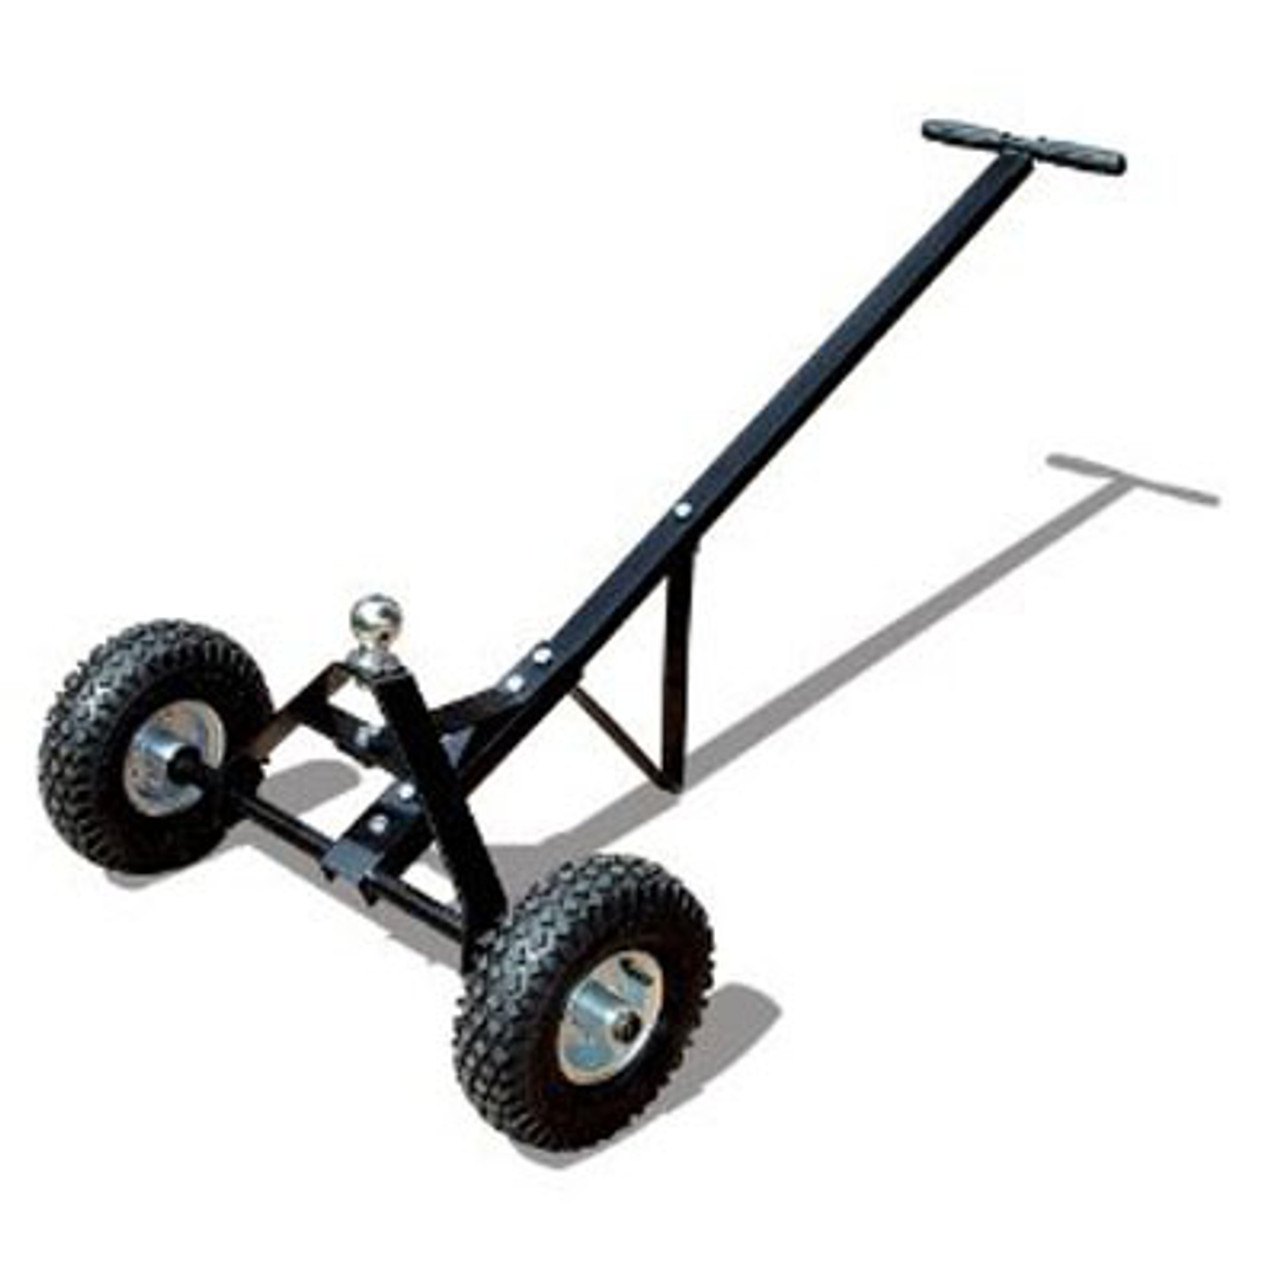 Sportsman Series TRDOLLY 600 Load Capacity Trailer Dolly